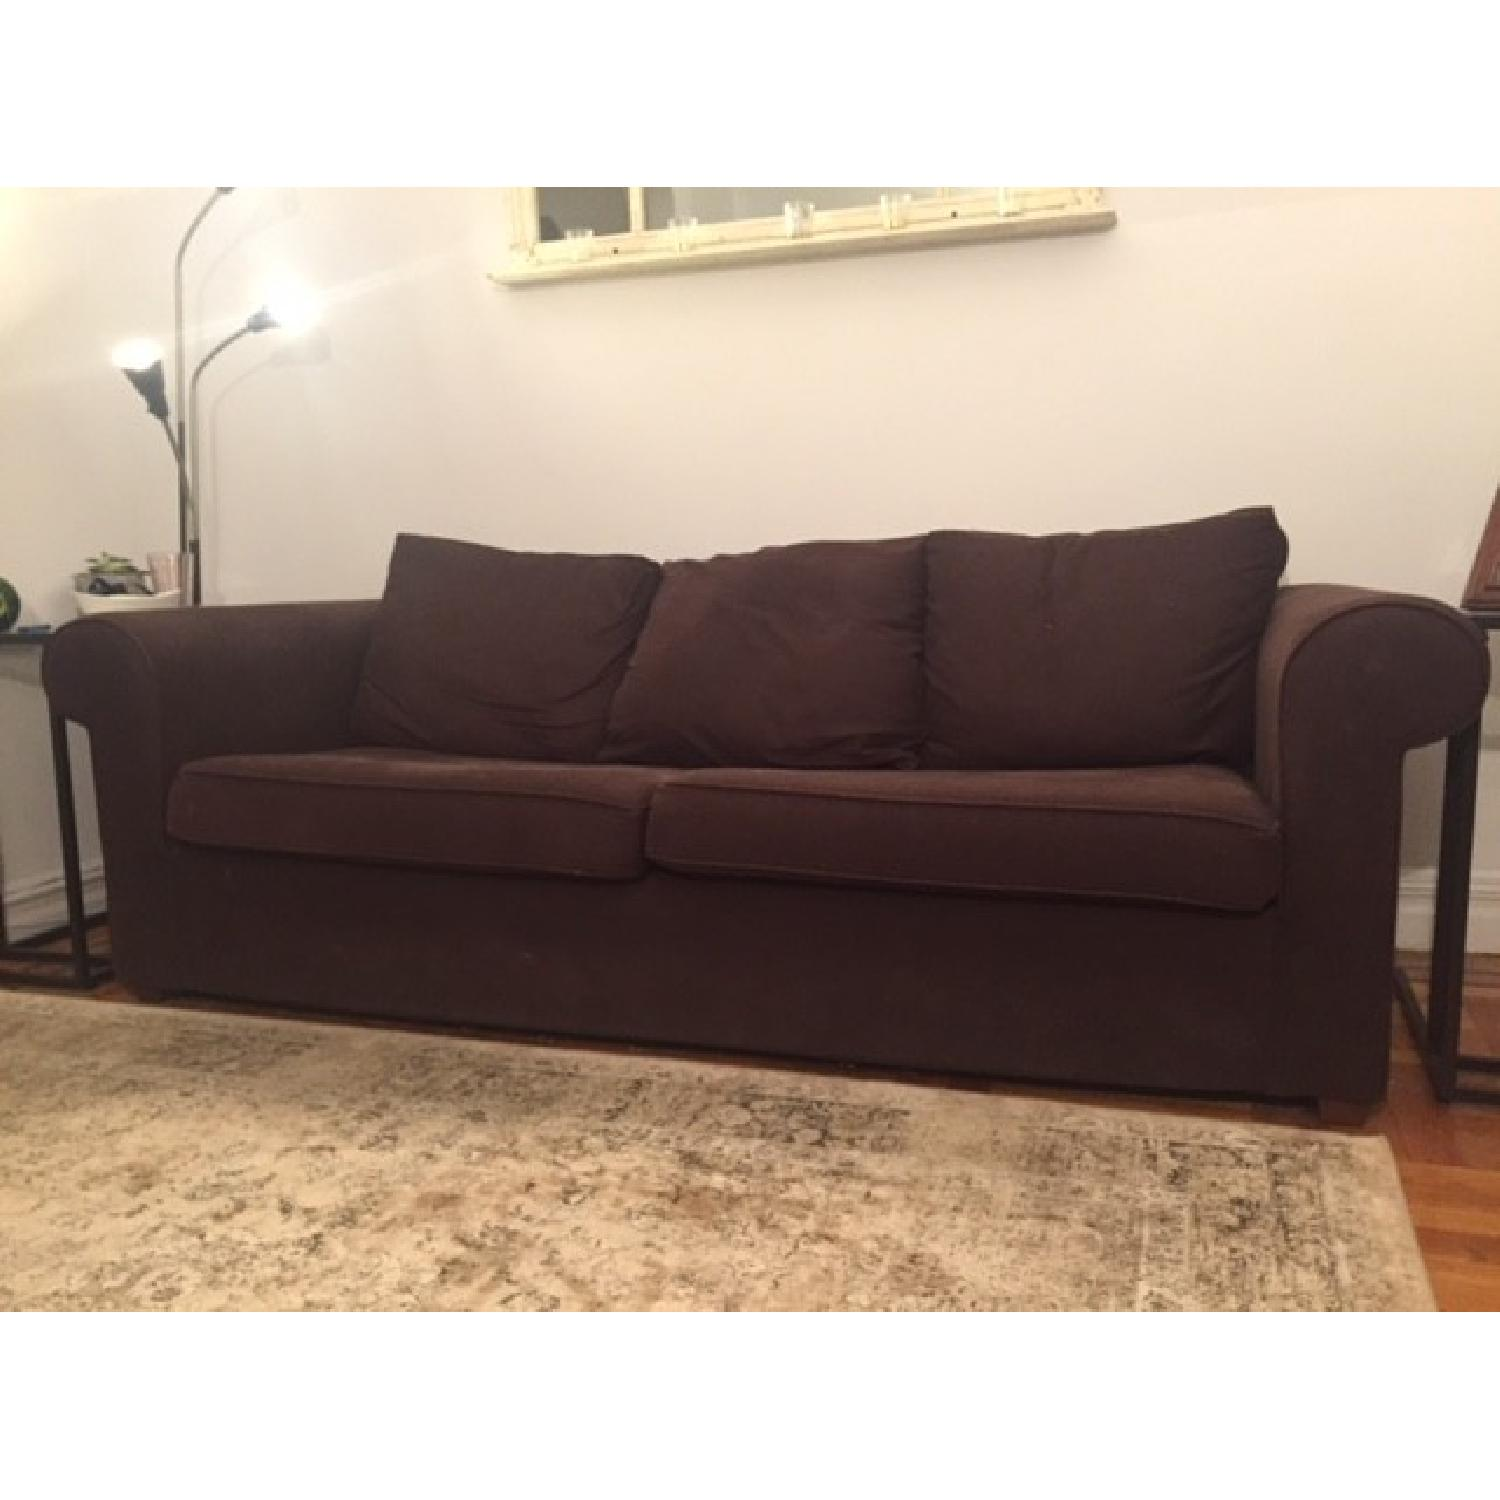 Ikea Couch - image-1